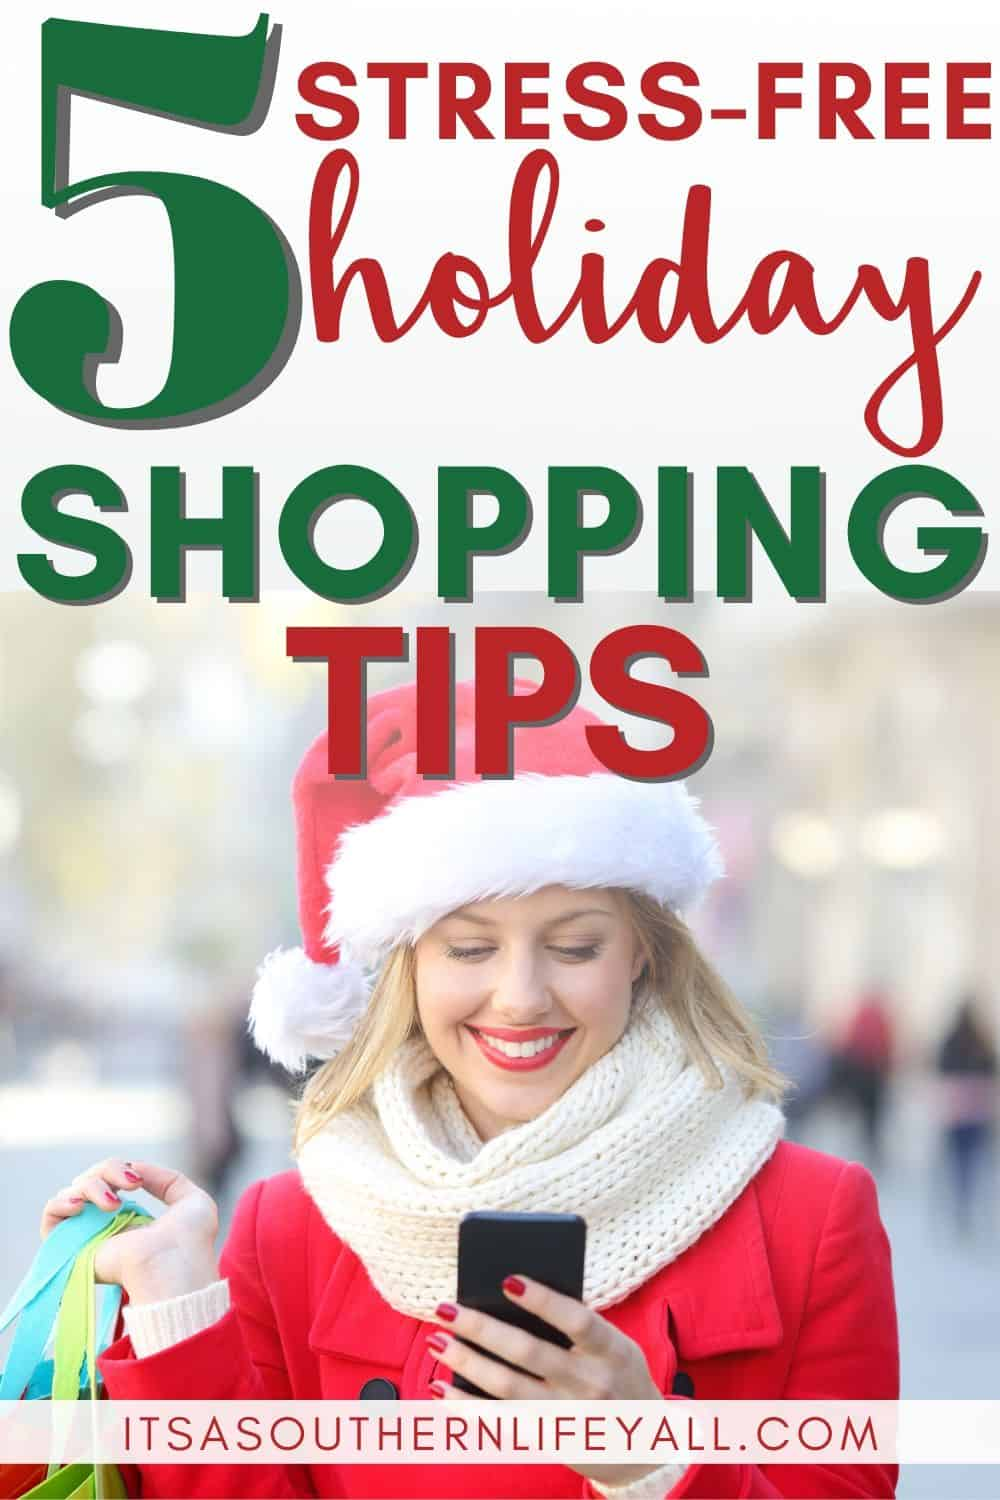 Woman Christmas shopping smiling with 5 stress-free holiday shopping tips text overlay.